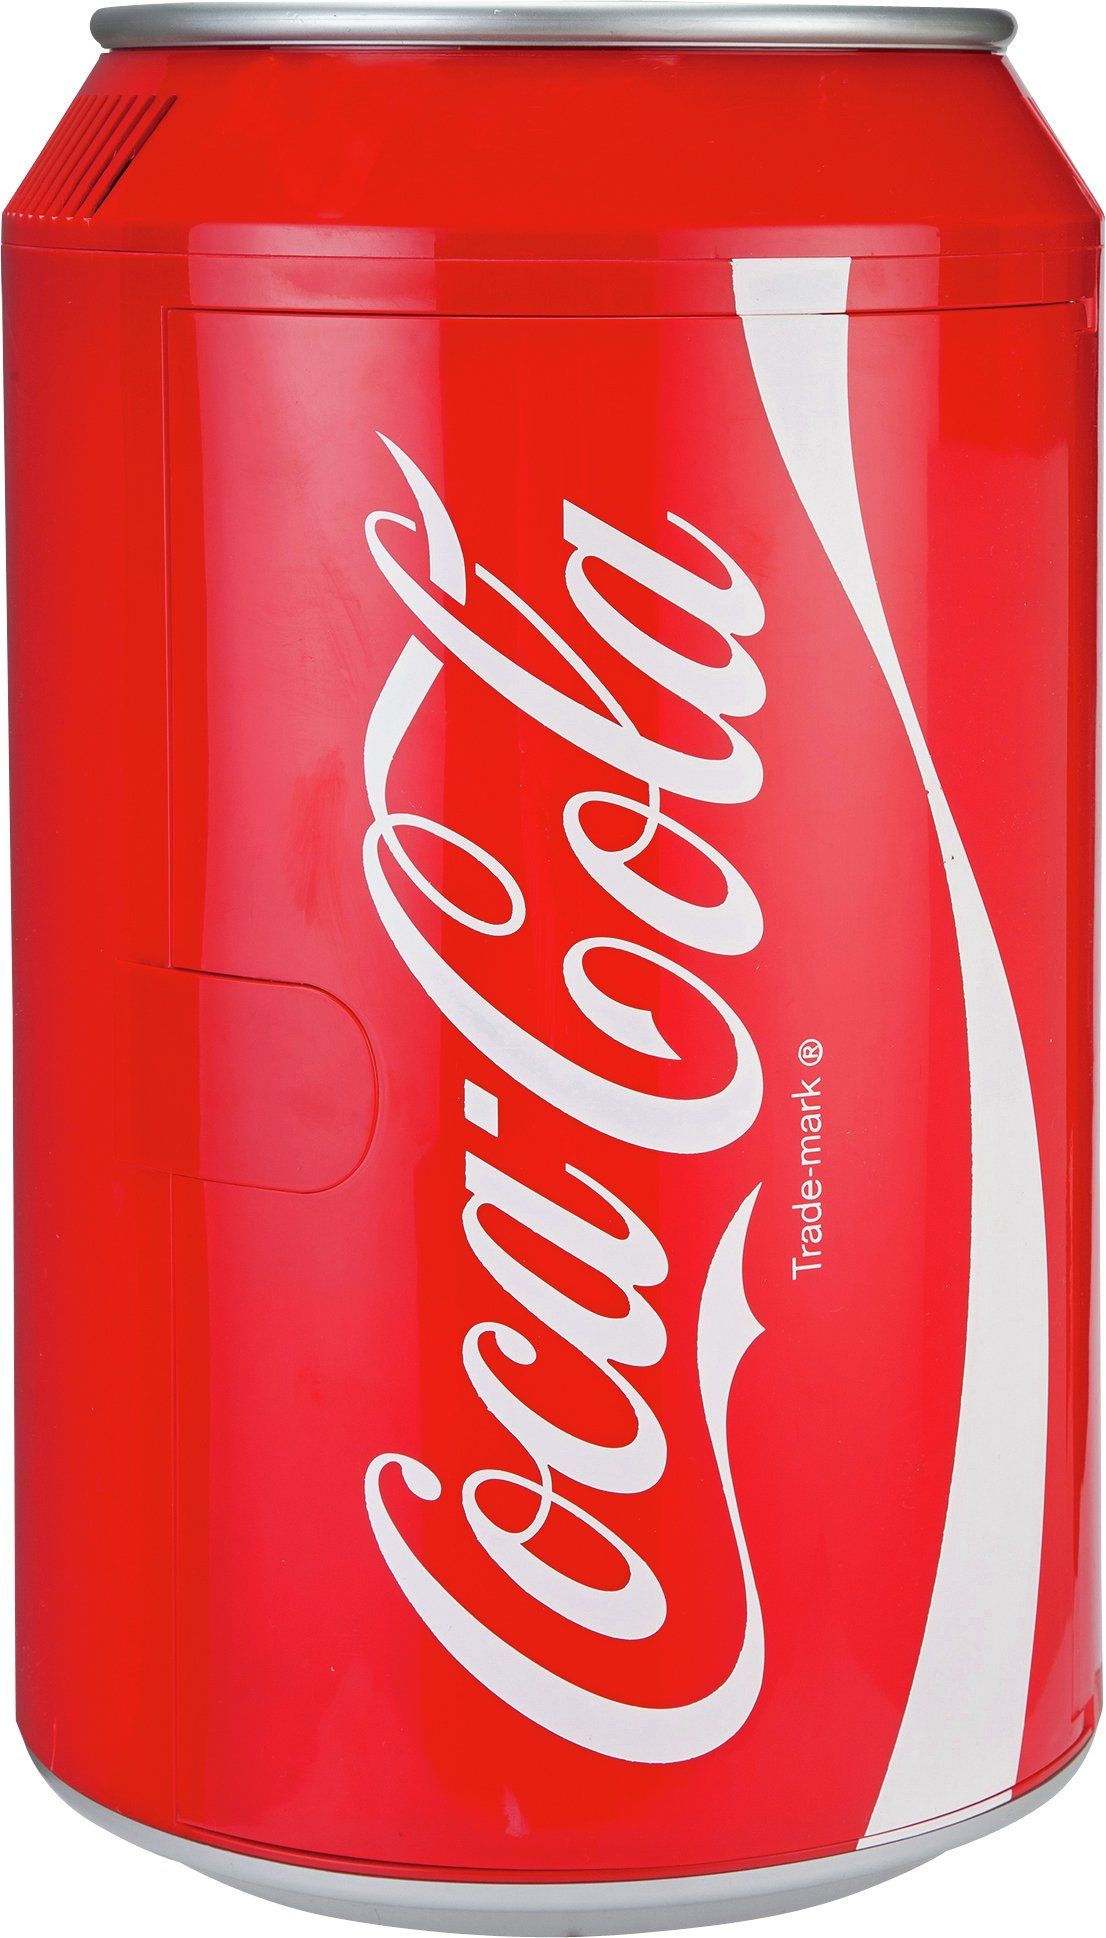 Image of Coca Cola - 1 Litre Coke Can Fridge